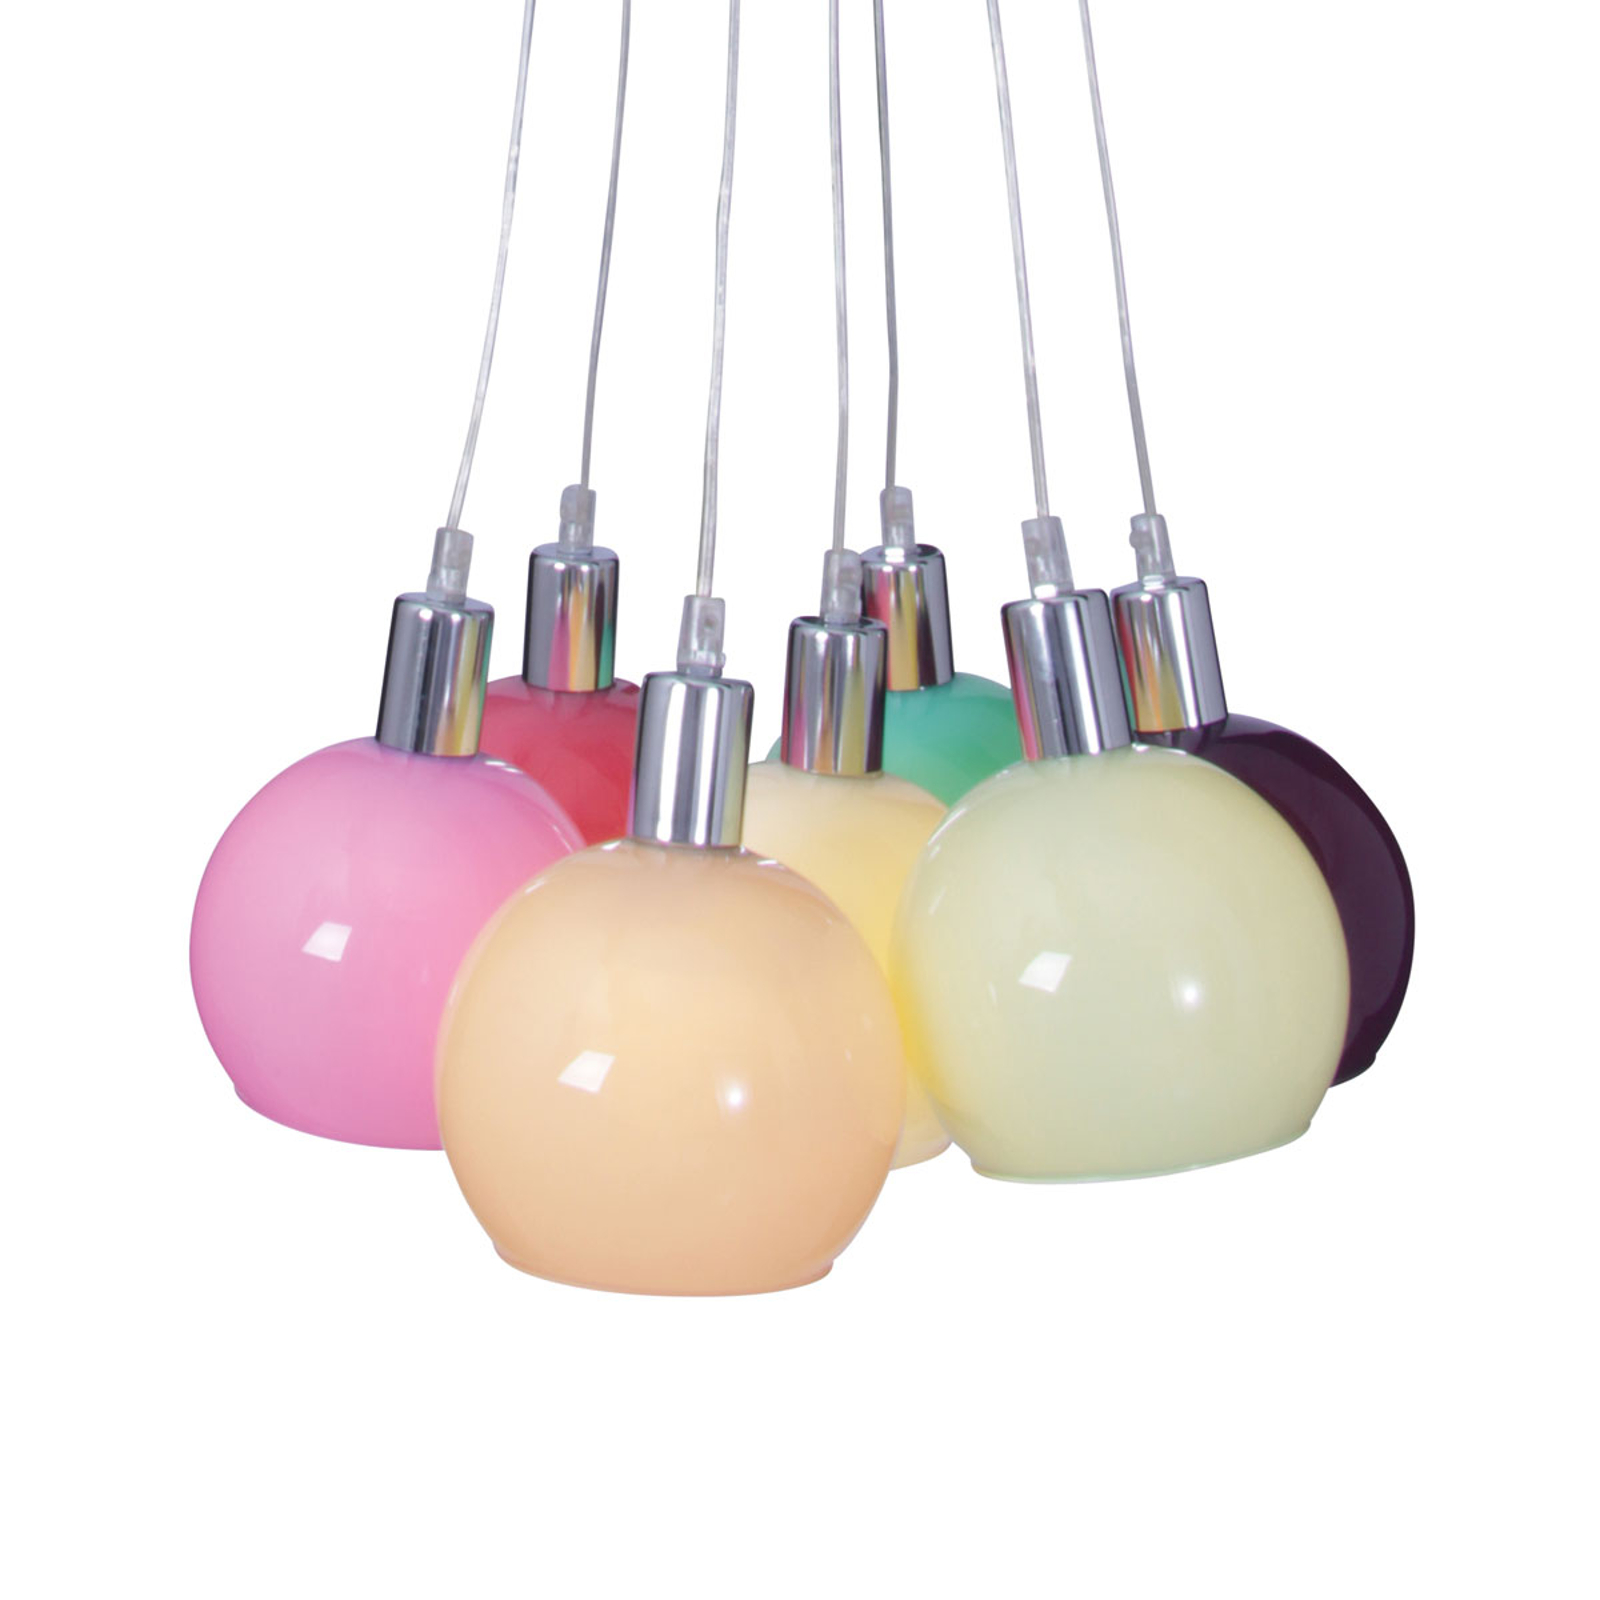 Suspension Rainbow Bowl aux abat-jour multicolores